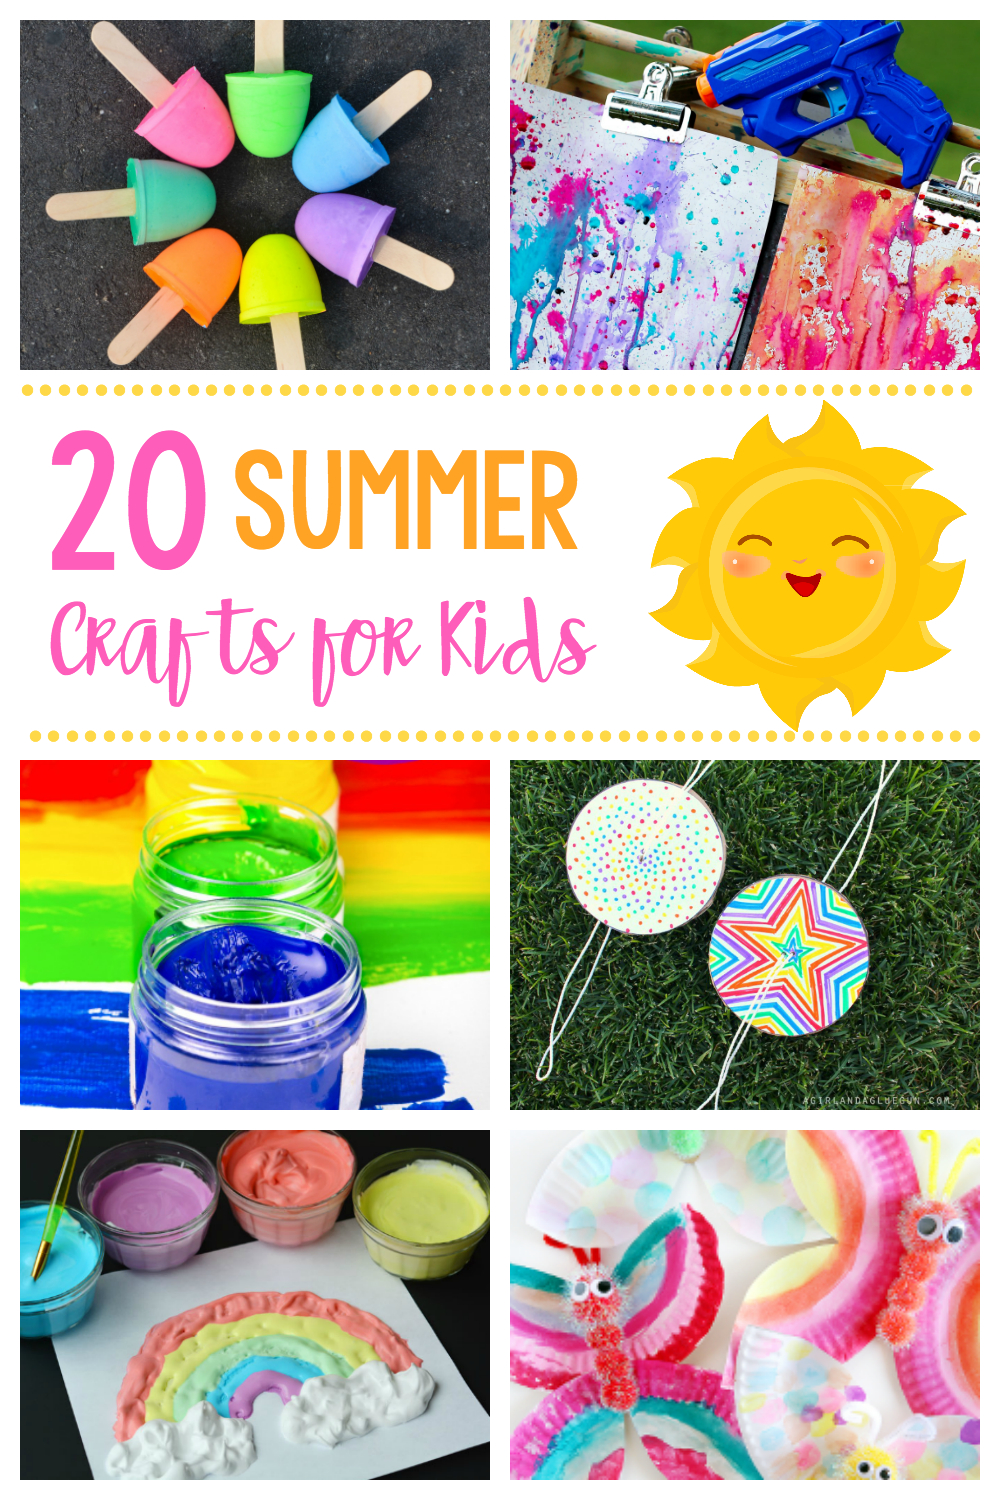 10 Unique Ideas For Crafts For Kids 20 simple fun summer crafts for kids